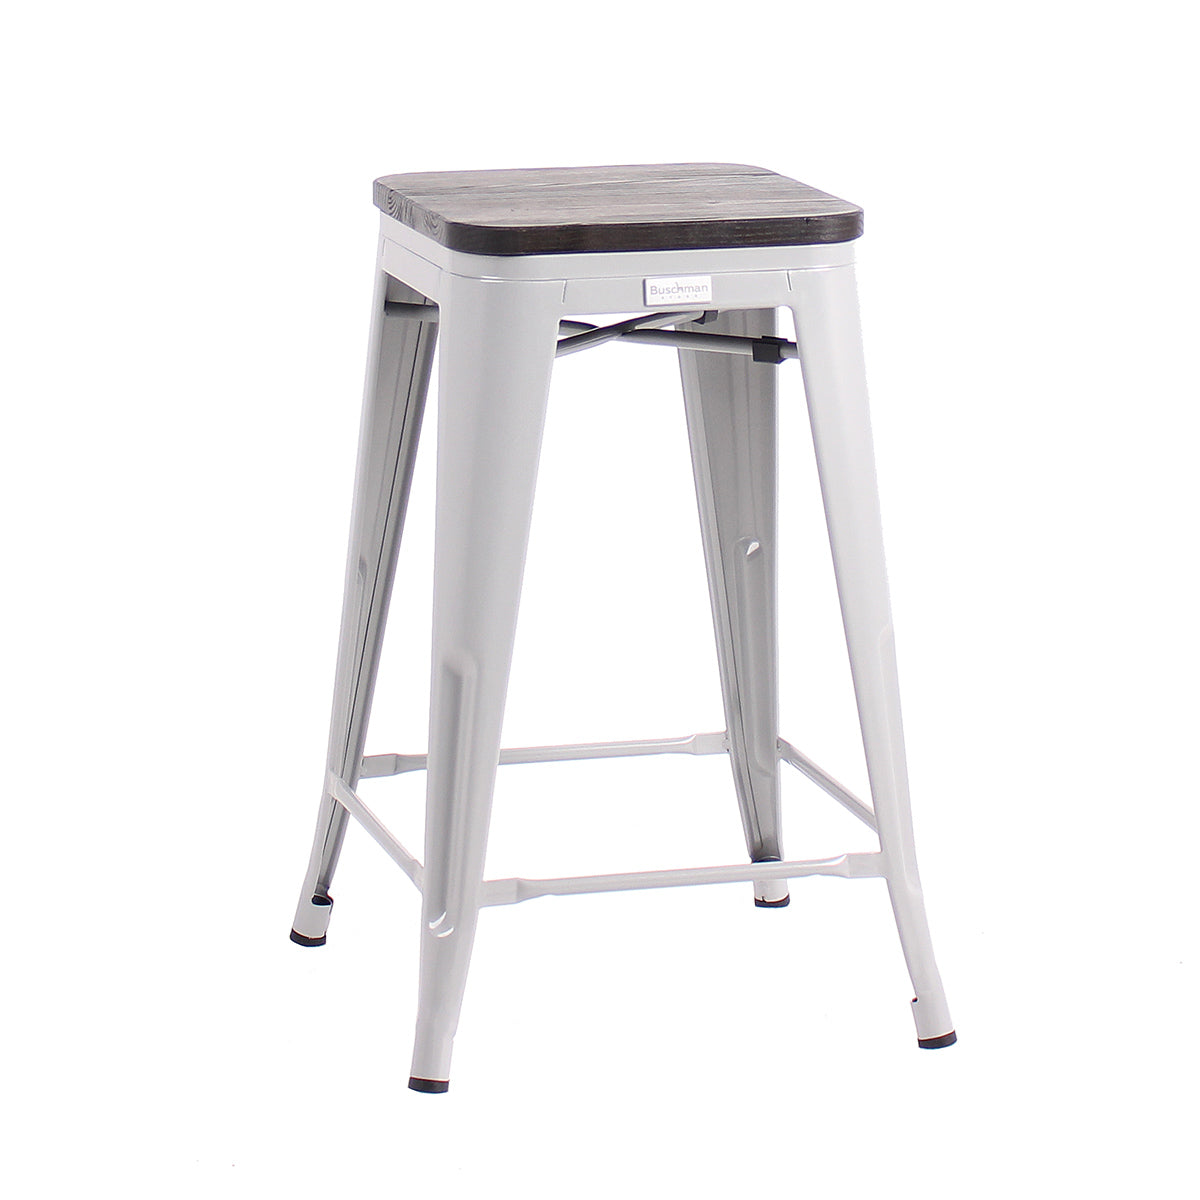 "Buschman Metal Bar Stools 24"" Counter Height, Indoor/Outdoor and Stackable, Set of 4 (Regular Grey with Wooden Seat)"